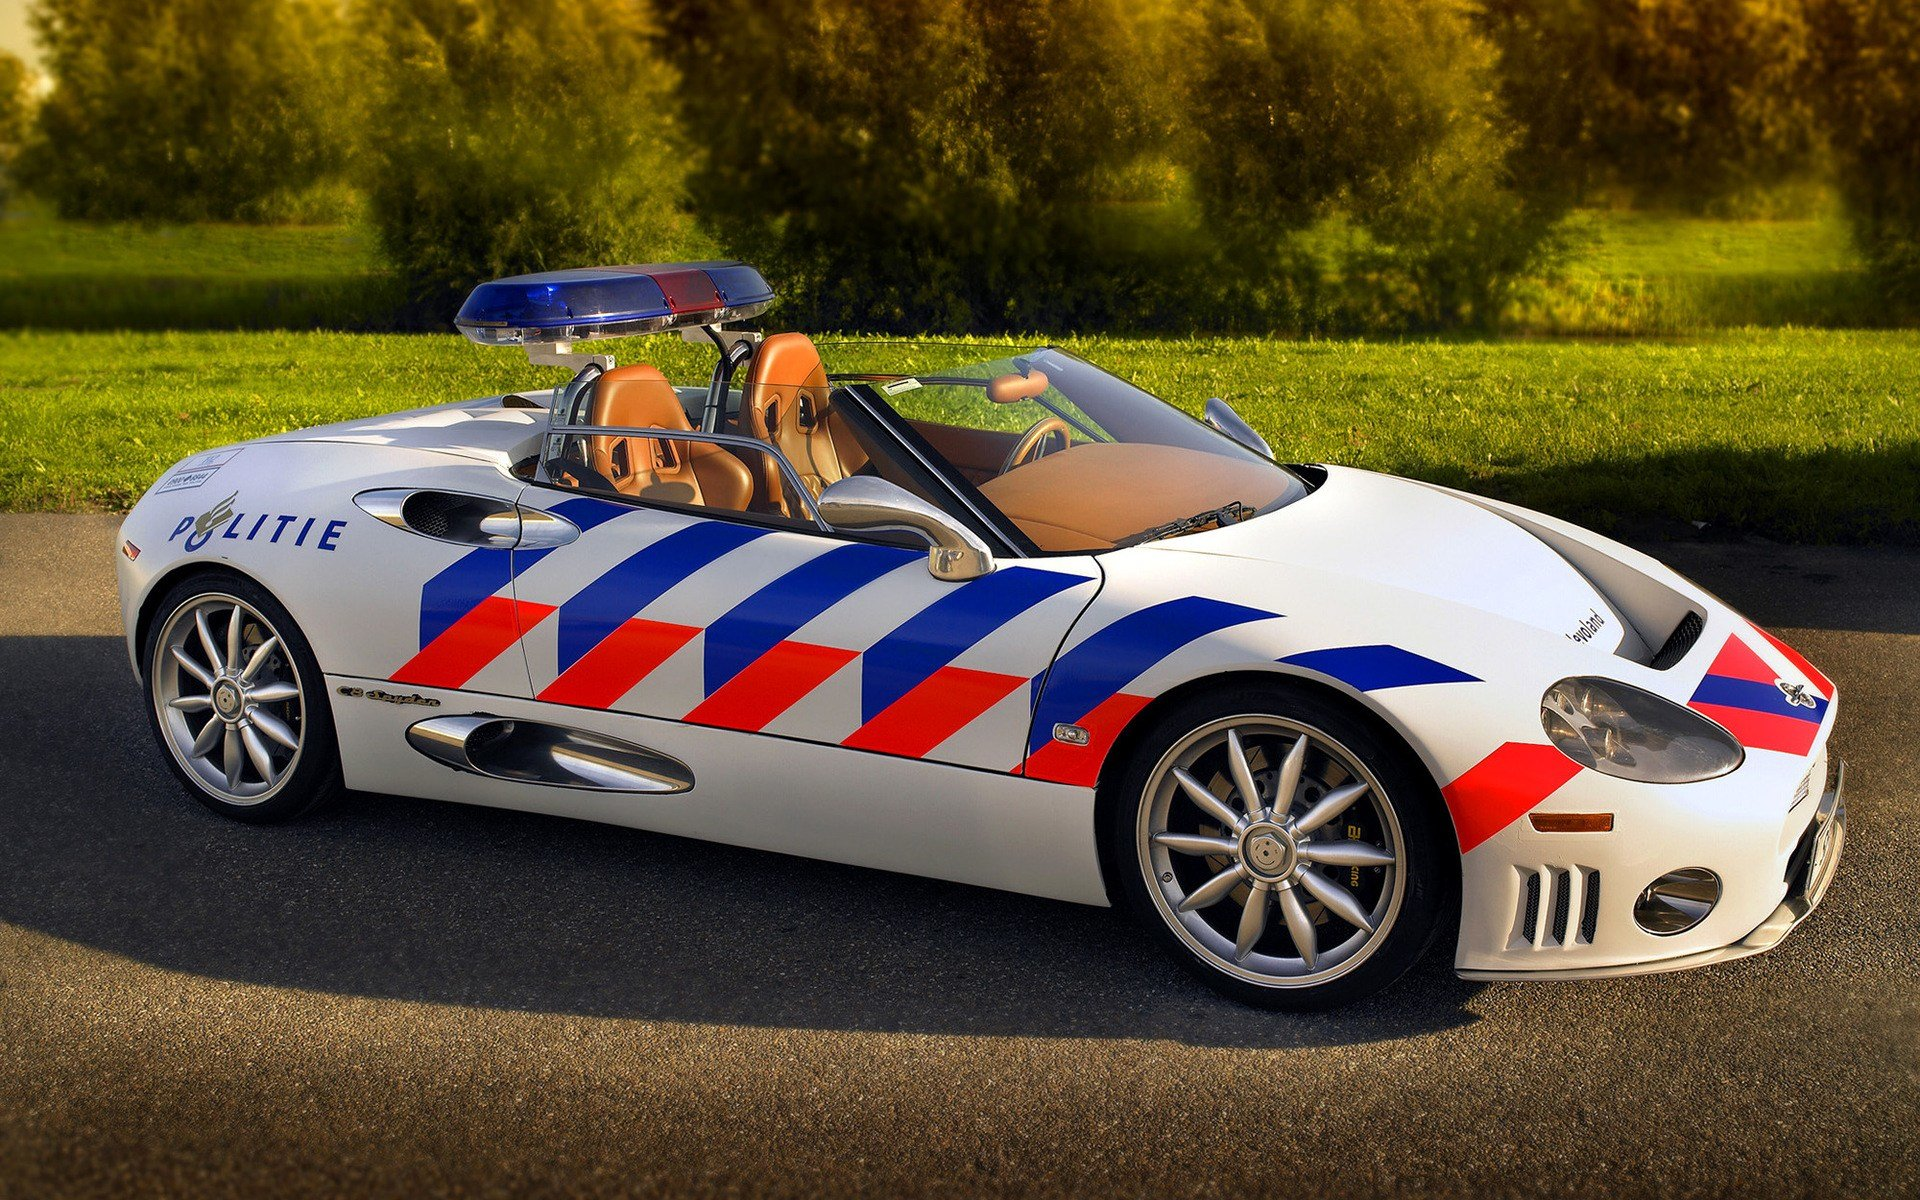 Latest 2006 Spyker C8 Spyder Politie Wallpapers And Hd Images Free Download